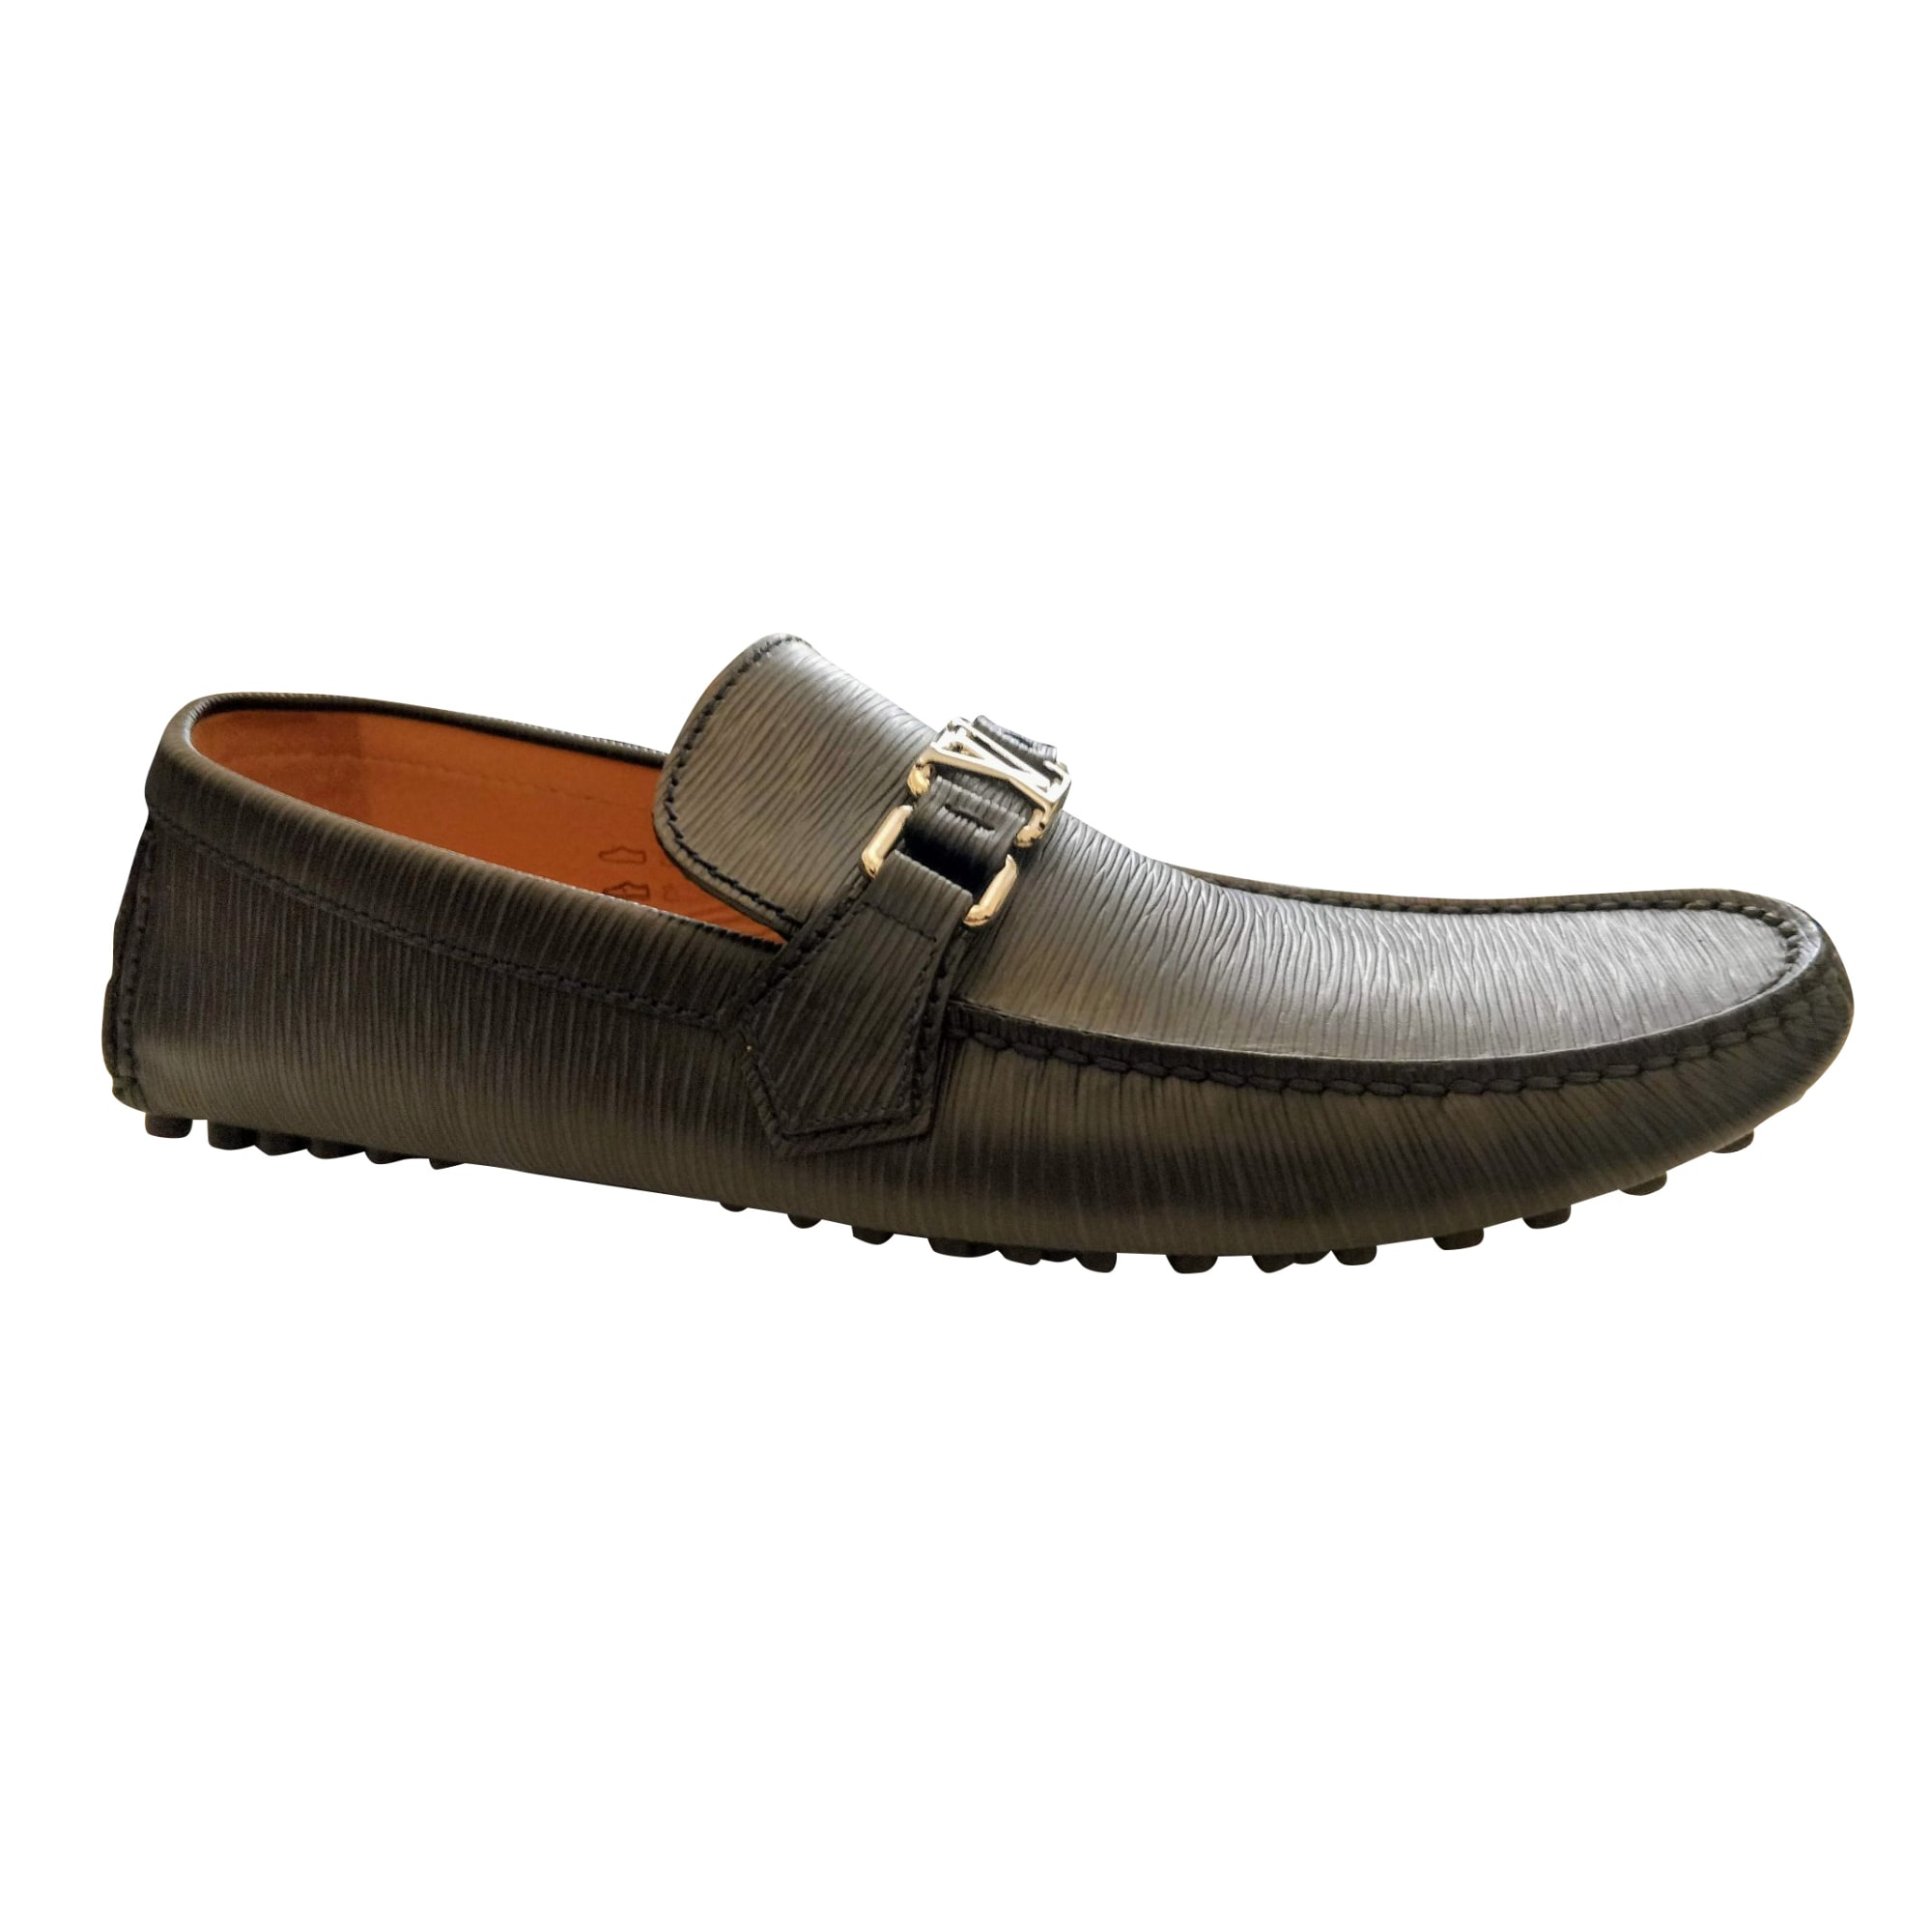 Loafers LOUIS VUITTON Blue, navy, turquoise